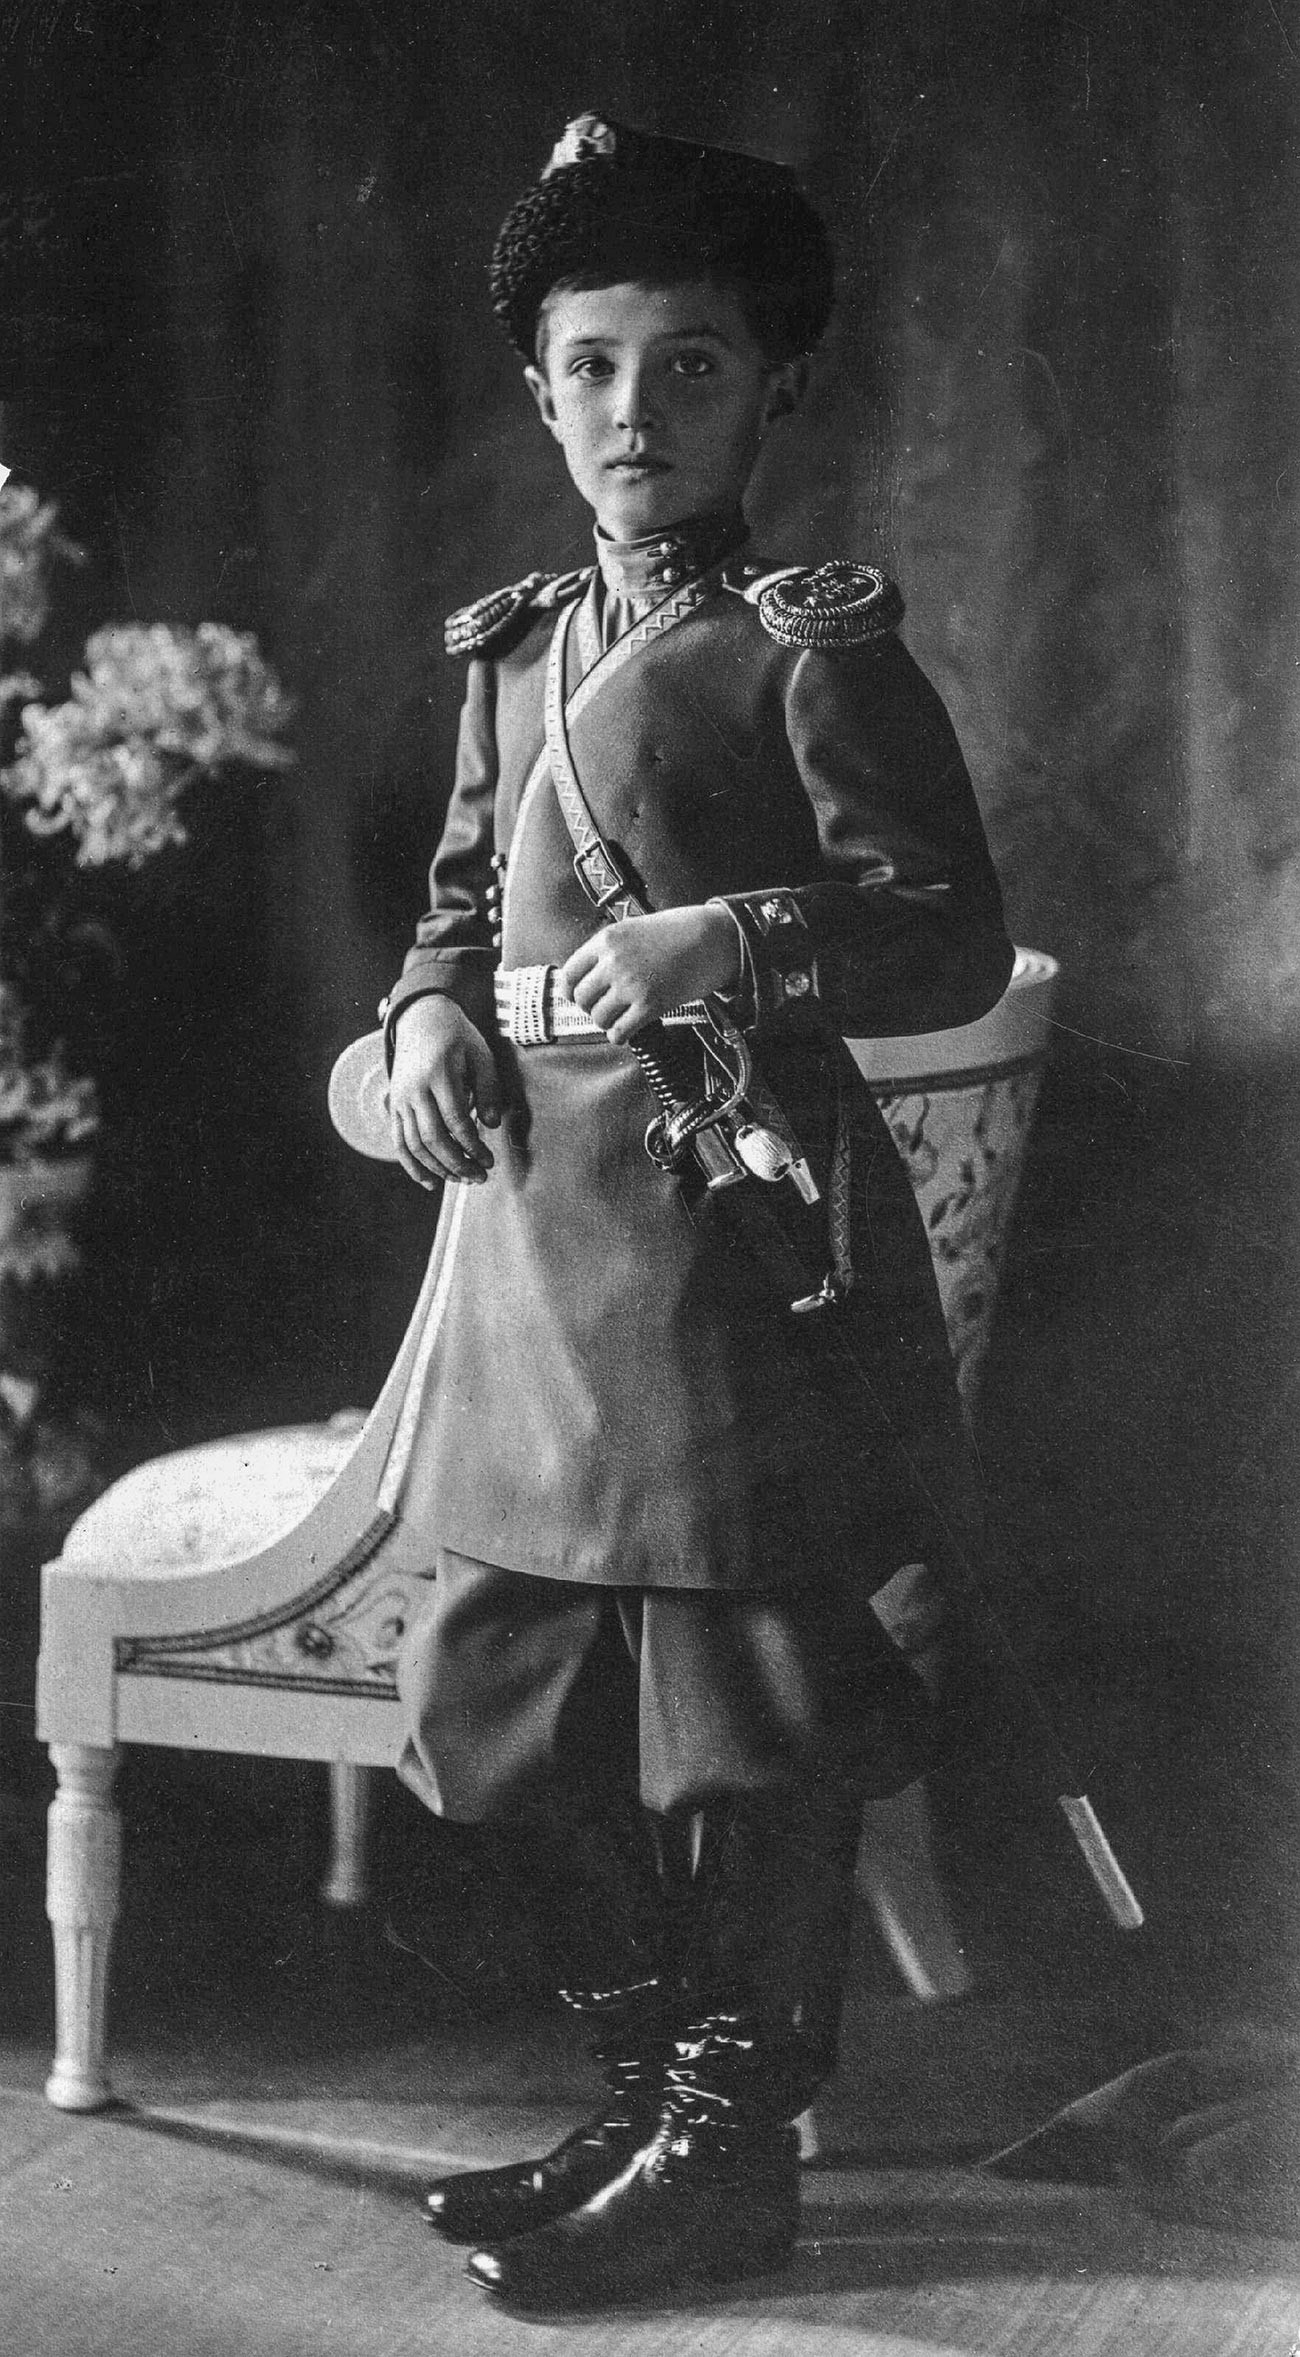 Alexei Nikolaevich (1904 - 1918), Tsarevich and heir apparent to the throne of the Russian Empire.